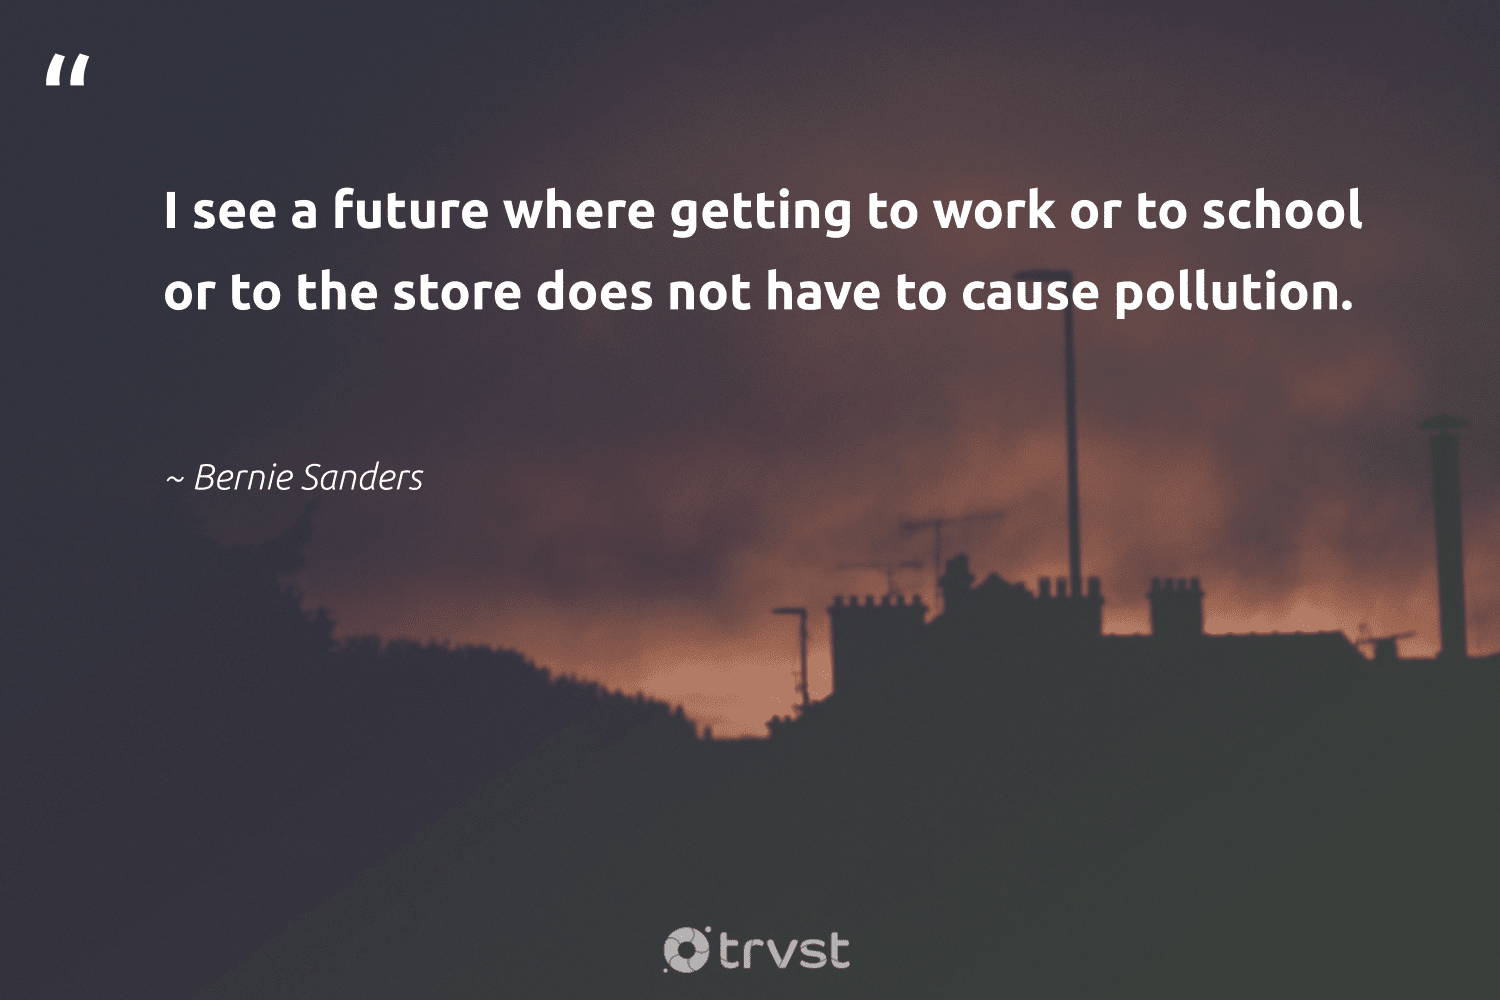 """""""I see a future where getting to work or to school or to the store does not have to cause pollution.""""  - Bernie Sanders #trvst #quotes #pollute #pollution #cause #toxic #volunteer #giveback #impact #sustainability #sustainable #changetheworld"""